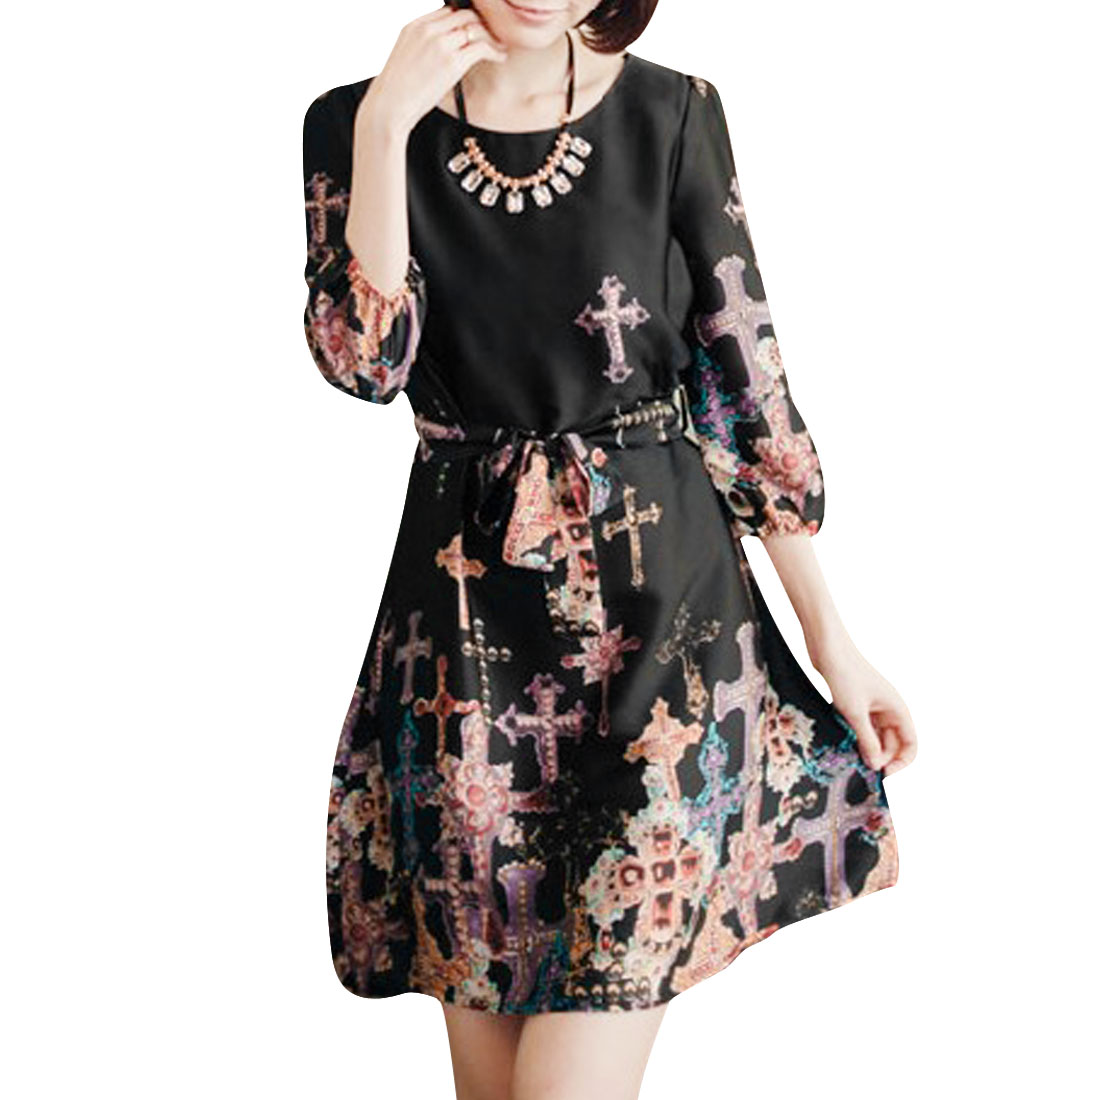 Lady Pullover Design Jewel Cross Prints Loose Black Above Knee Dress S